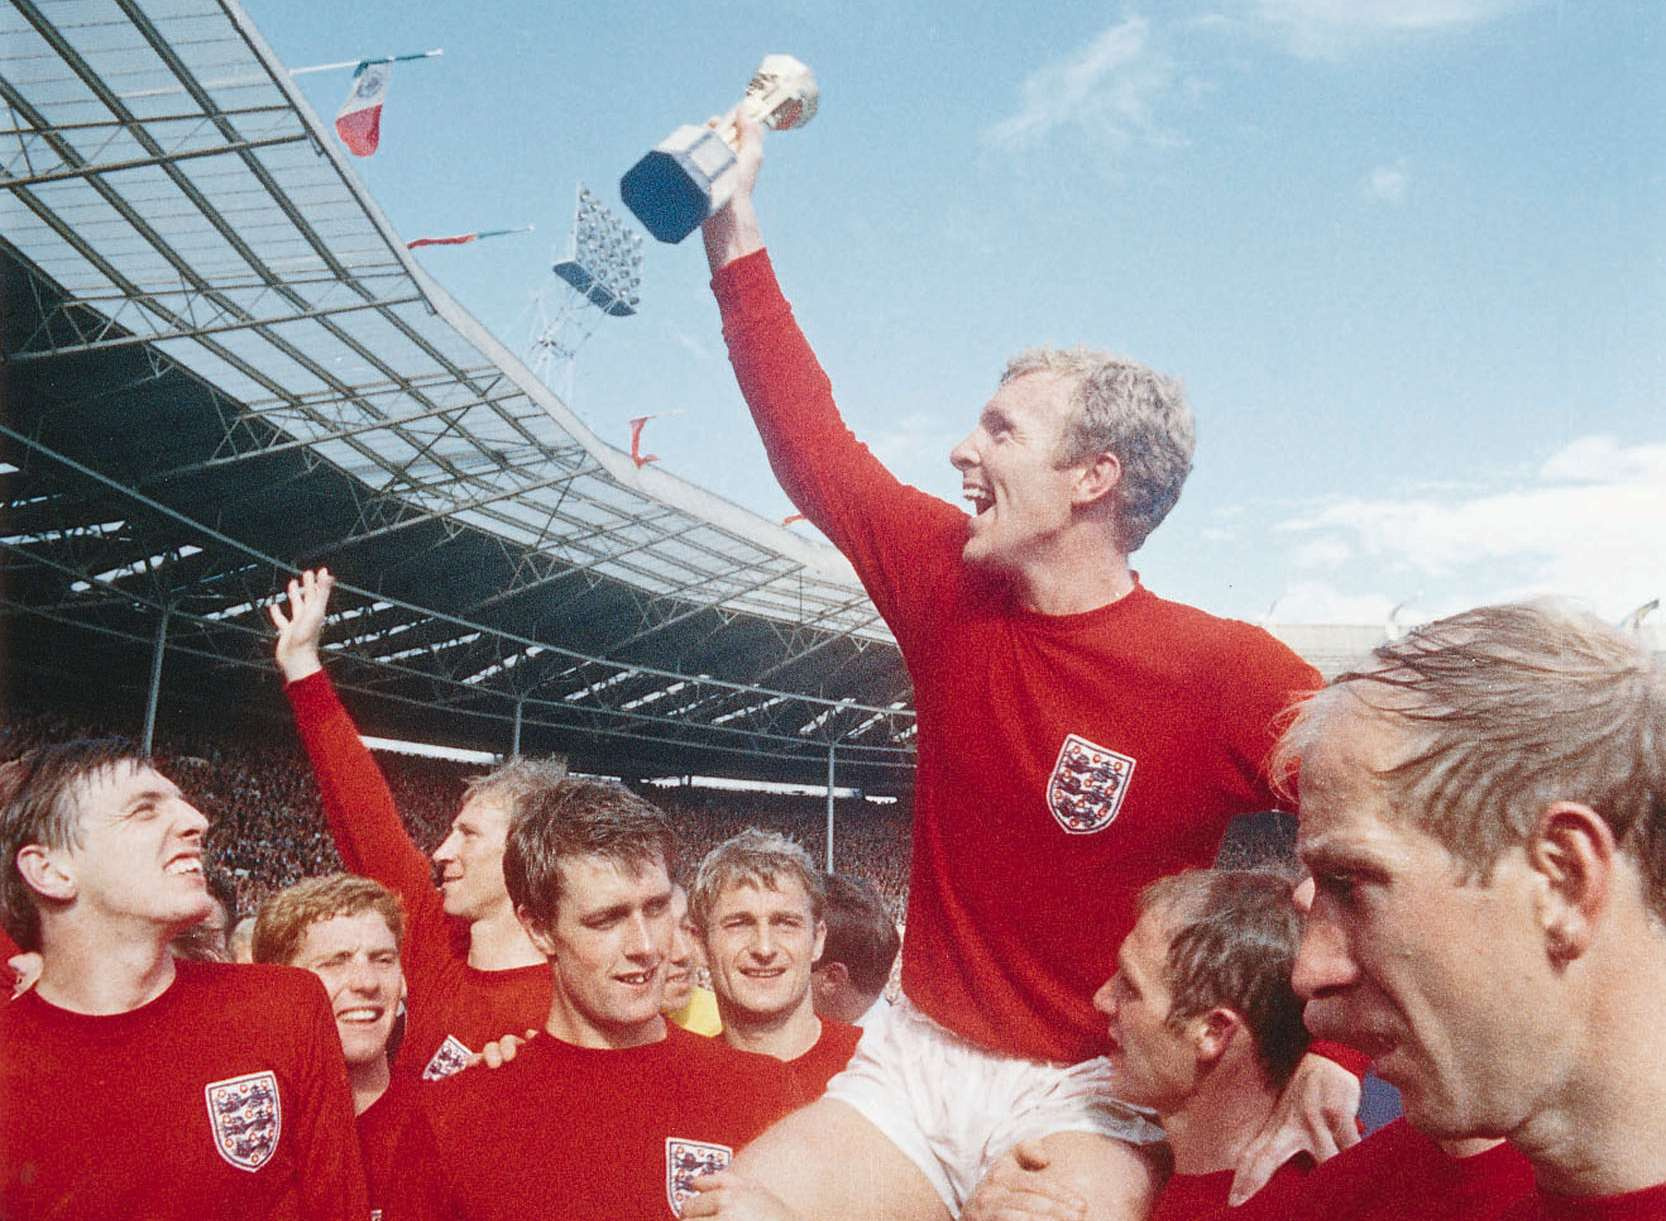 1966 world cup final - photo #27